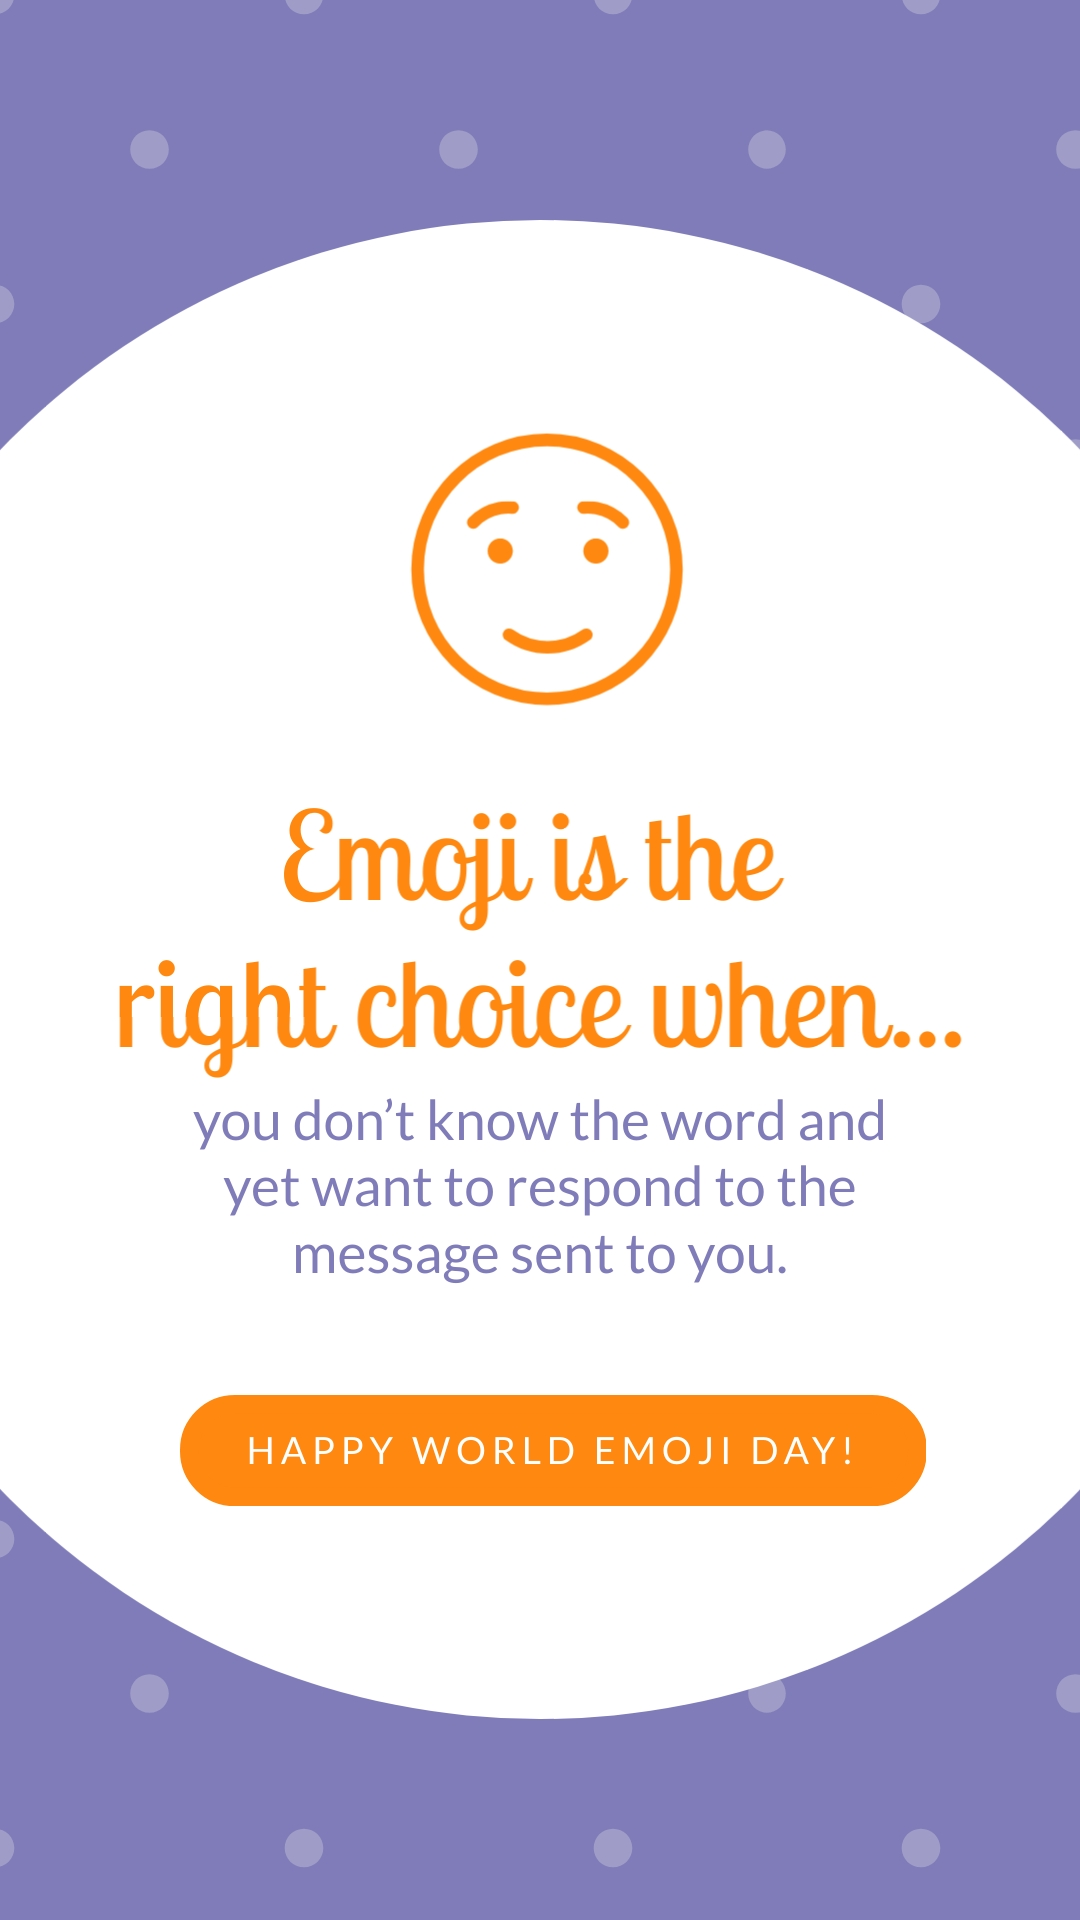 Emoji is the Right Choice Animated Vertical Template